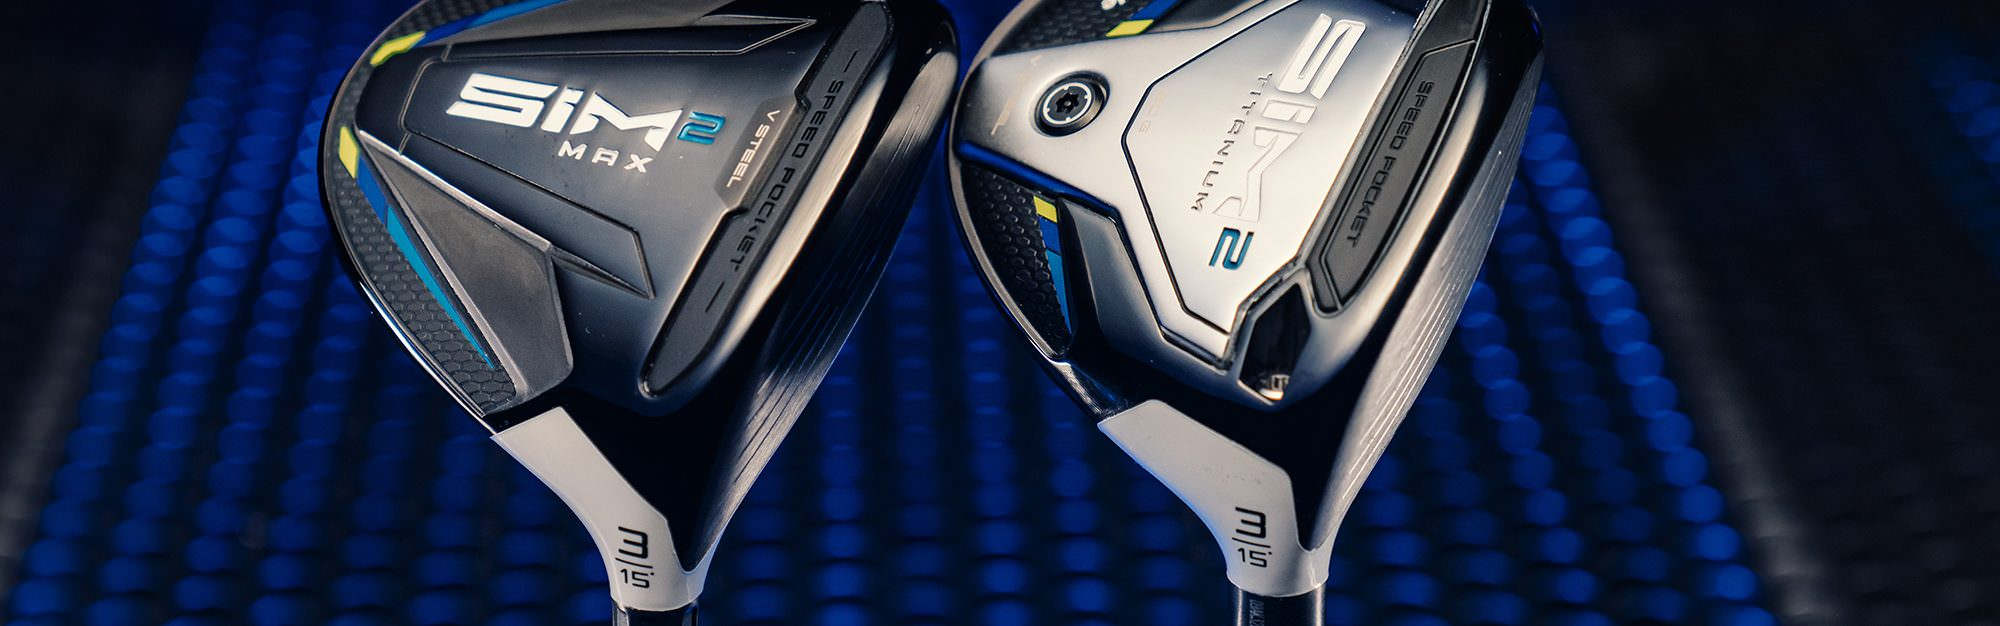 TaylorMade SIM2 fairway woods review: Tiger Woods is a fan – but are we?